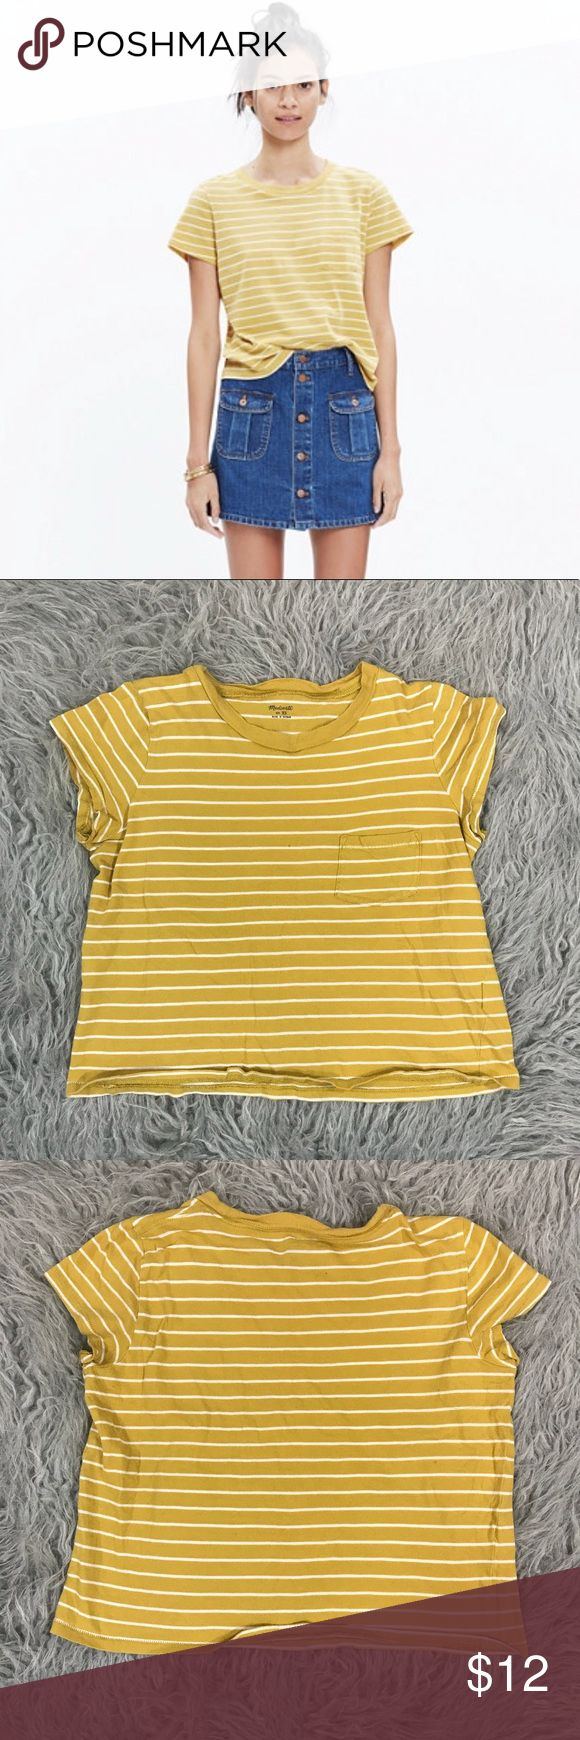 "Madewell Radio Tee Yellow Striped Crop Top In used condition. Very small micro hole shown in close up picture where I am pointing. Mustard yellow base with white stripes. Super cute pocket detail. Stretchy! 100% cotton. Size XS, please refer to measurements to ensure a proper fit.   Across: 17"" Length: 18"" Madewell Tops Crop Tops"